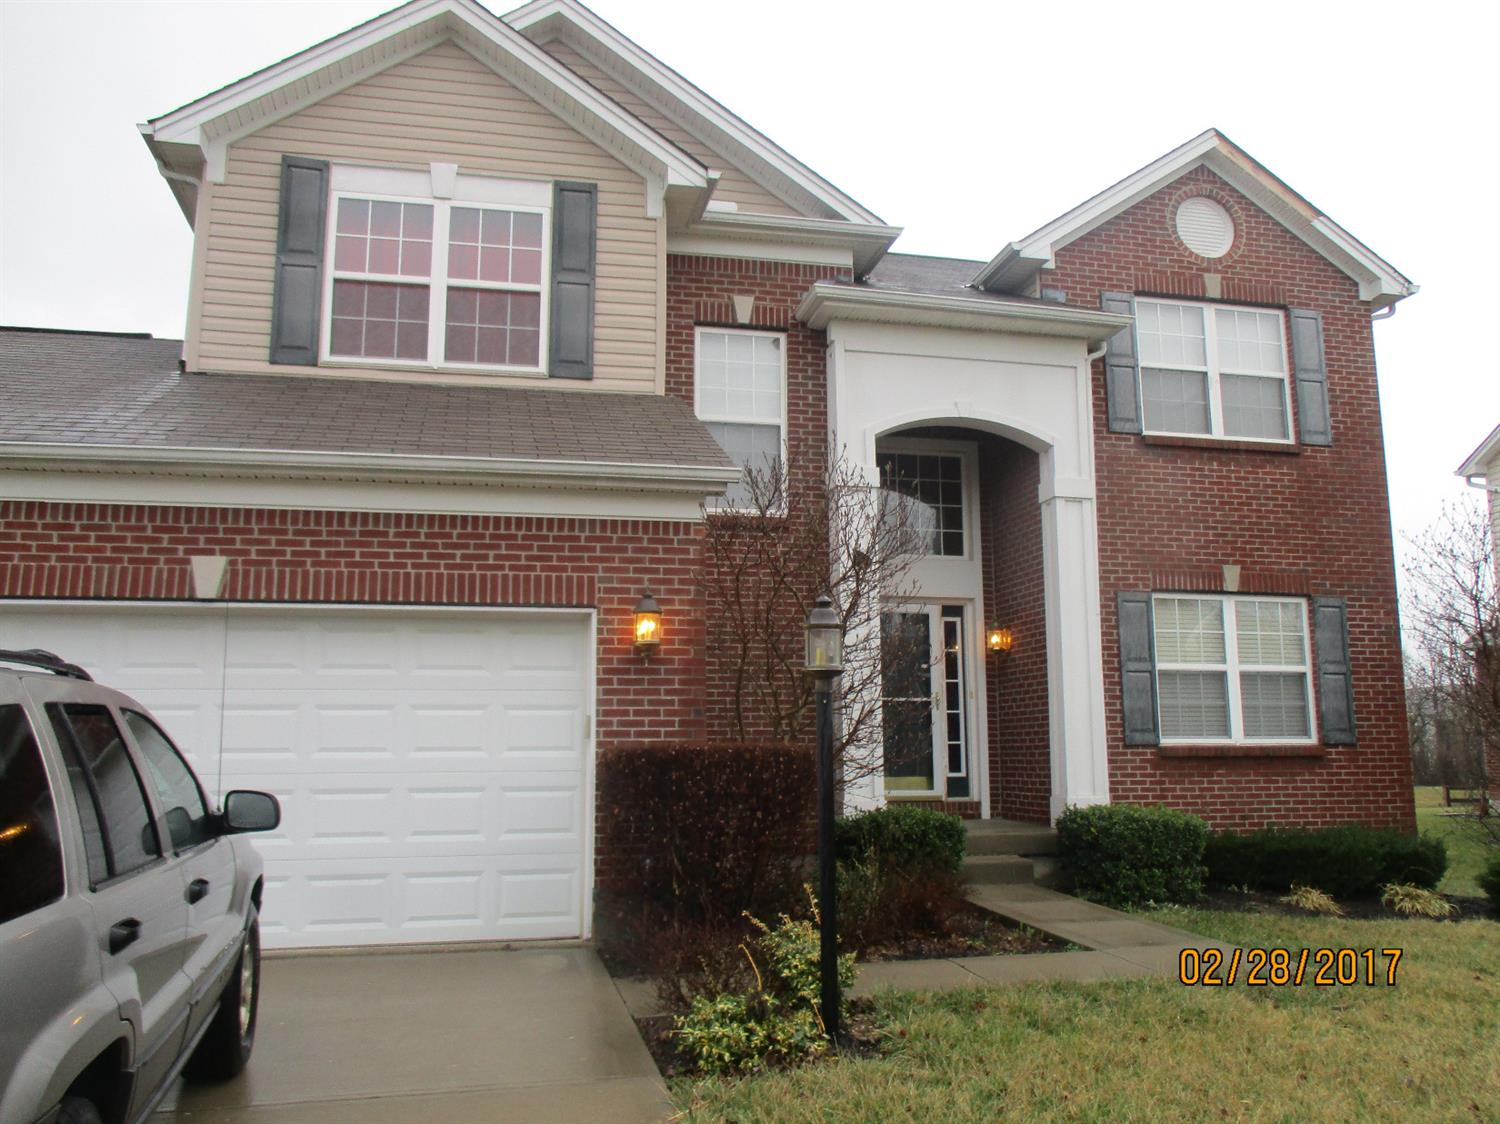 8264 Sea Mist, West Chester, OH 45069